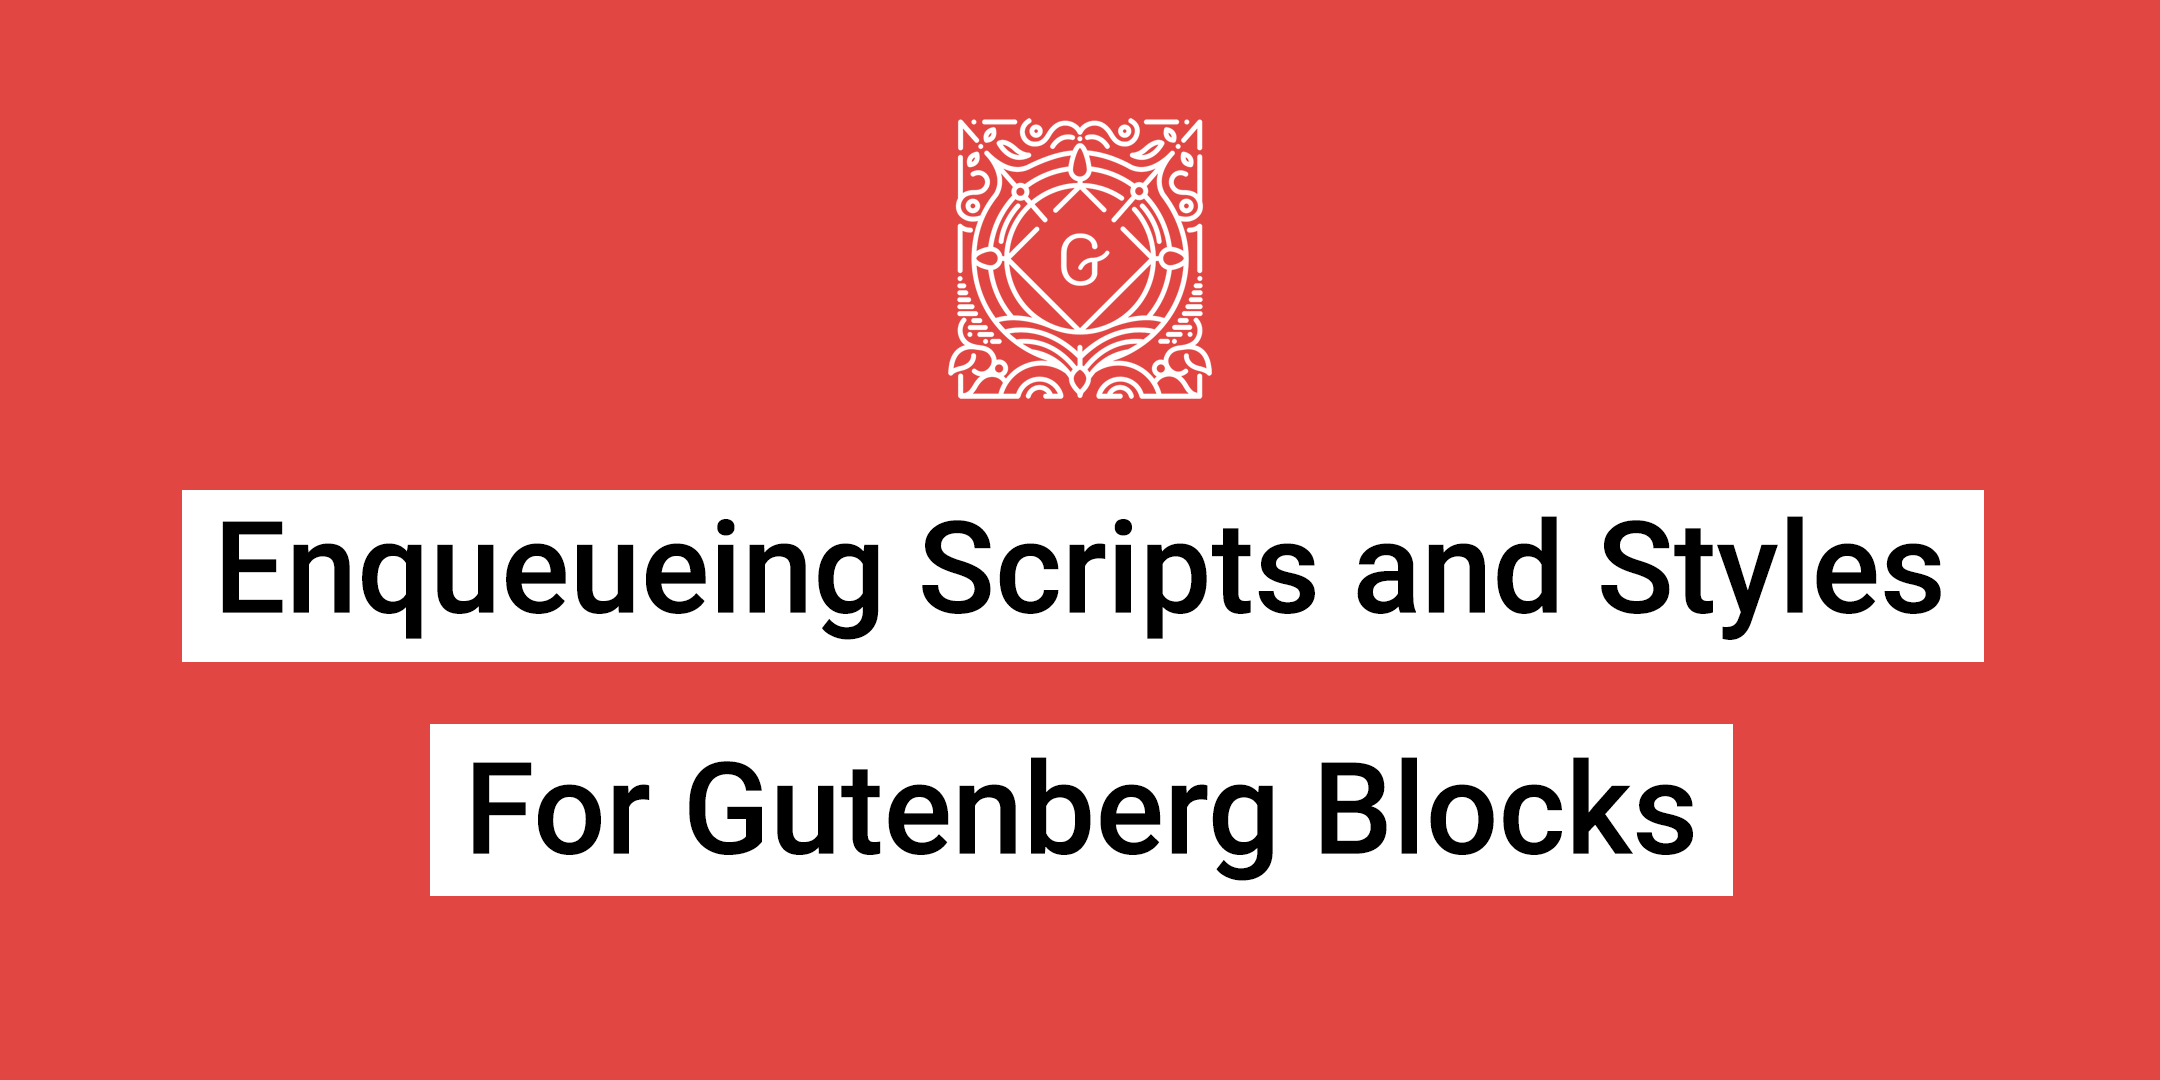 Enqueueing scripts and styles for gutenberg blocks